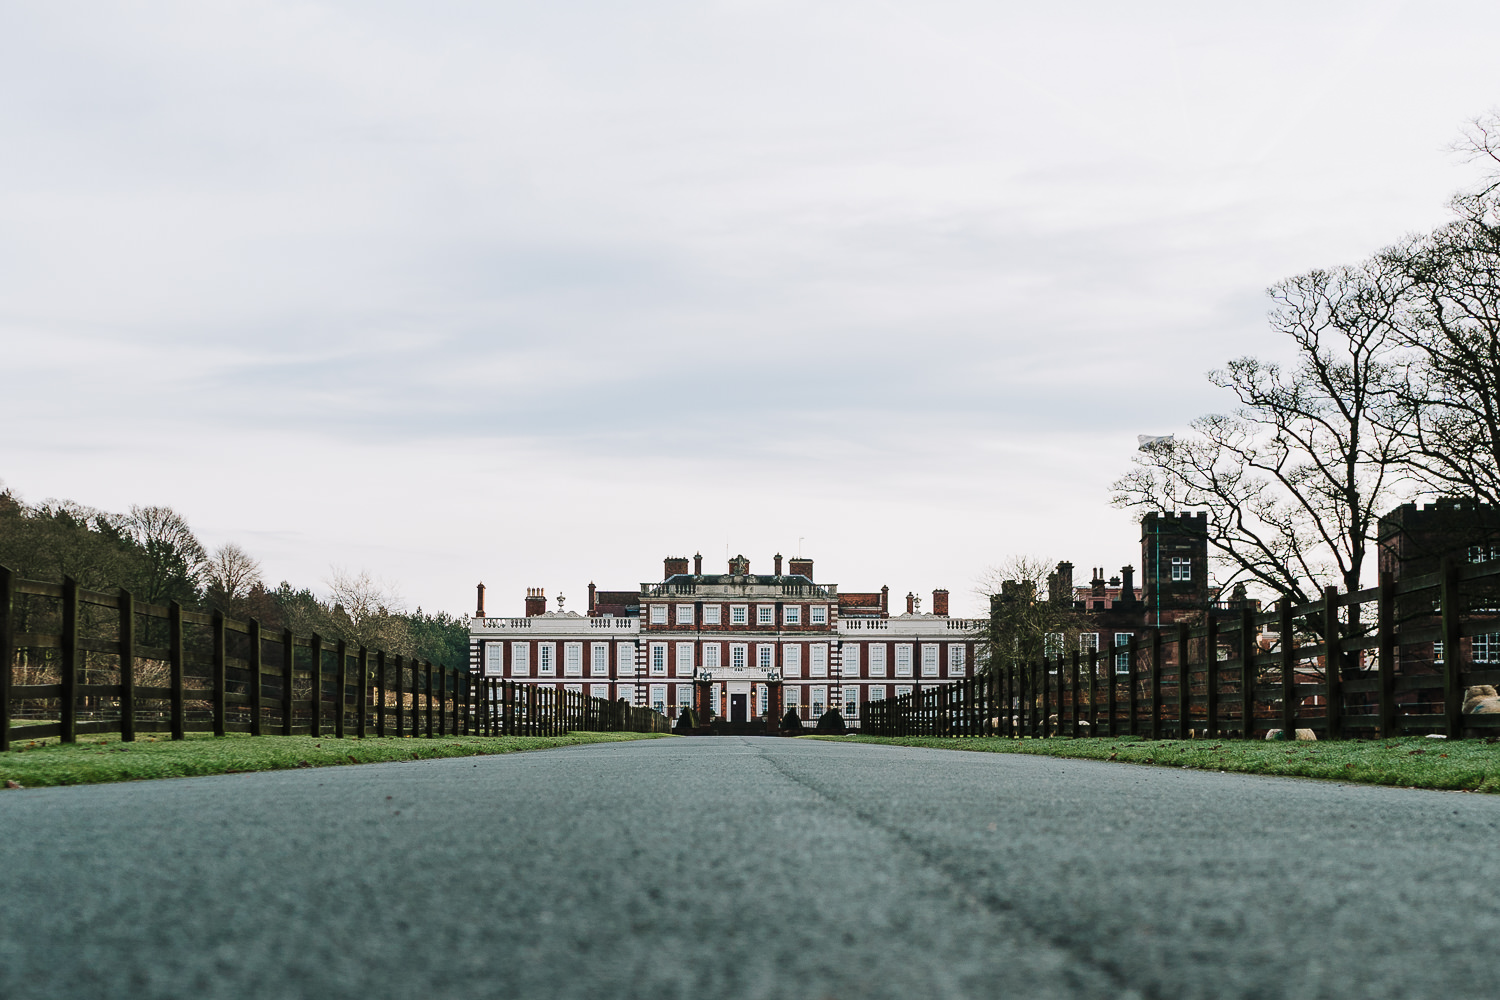 A photo of Knowsley Hall from the drive